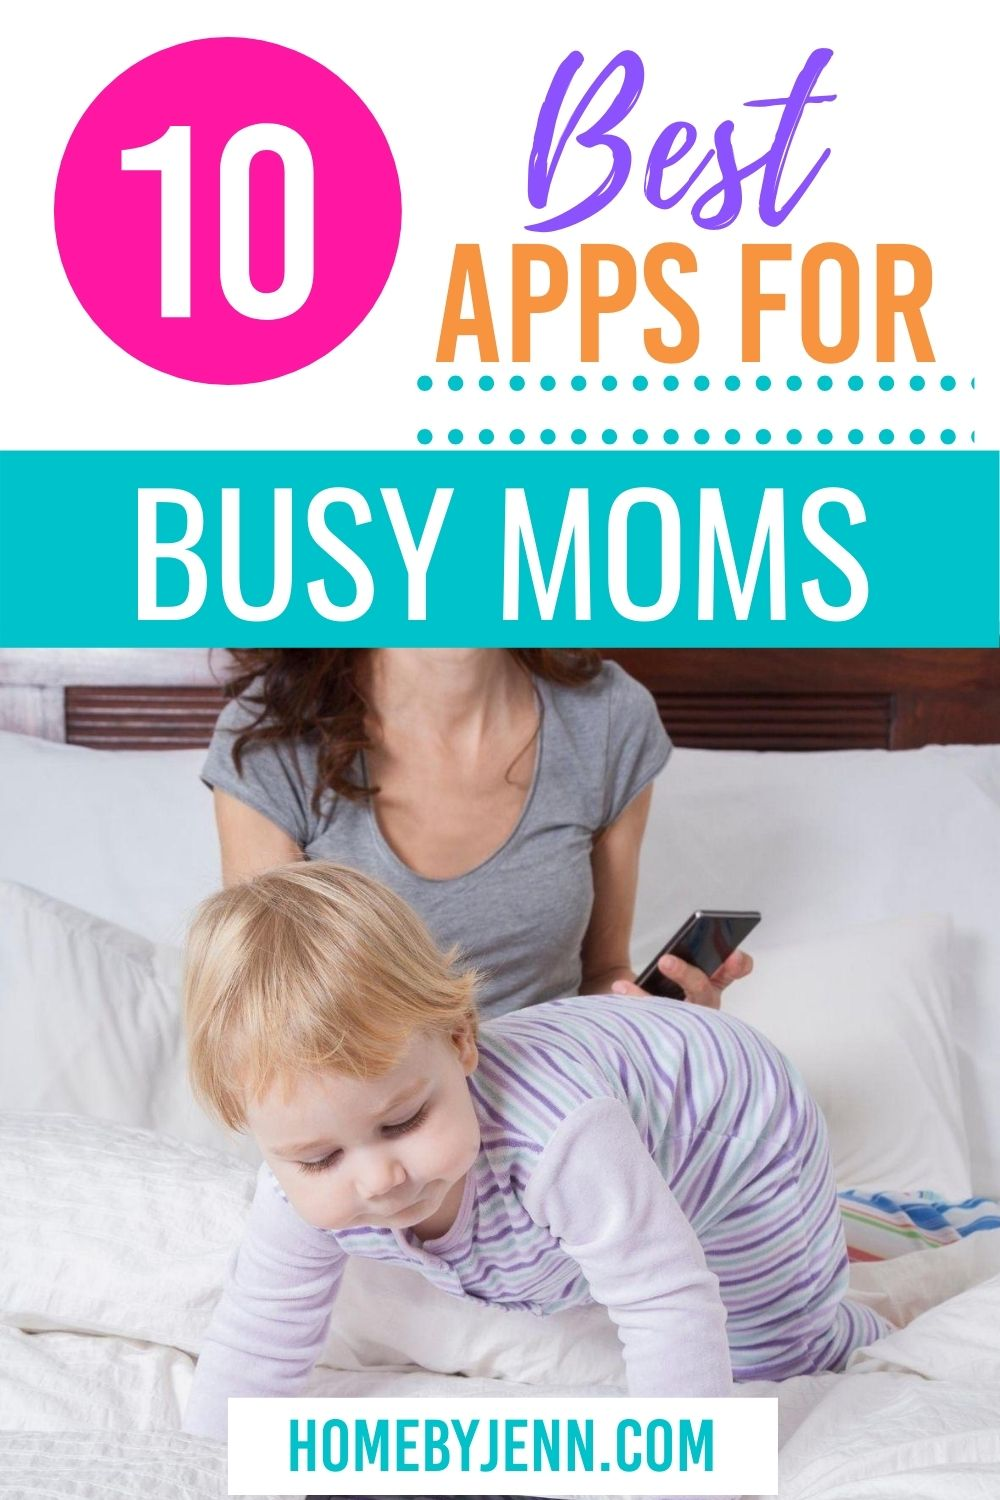 Save time and organize your life with apps. Find out the best apps for busy moms that you can start using today to make your life easier. #bestappsforbusymoms #appsformoms #topappsformoms #iphone #iphoneapps #androidapps #busymom #SAHM #timesavingtips #momapps via @homebyjenn